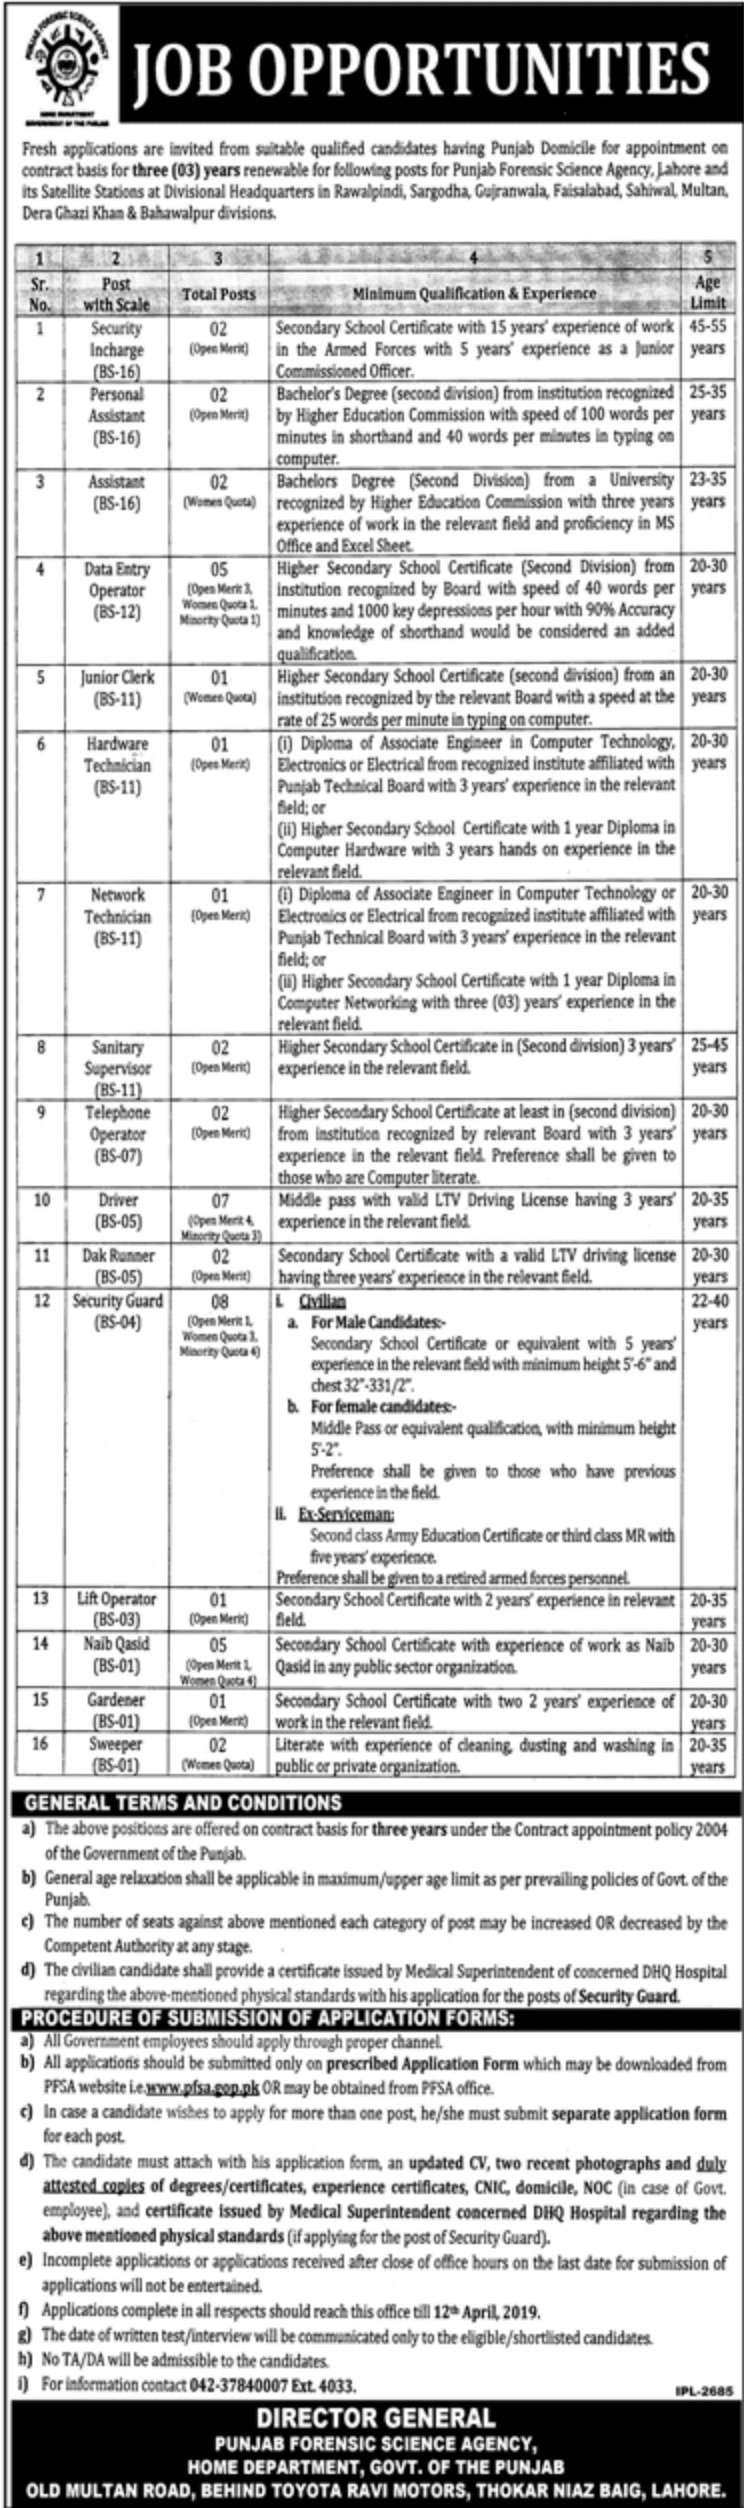 Punjab Forensic Science Agency Home Department Lahore Jobs 2019 Government of Punjab Latest